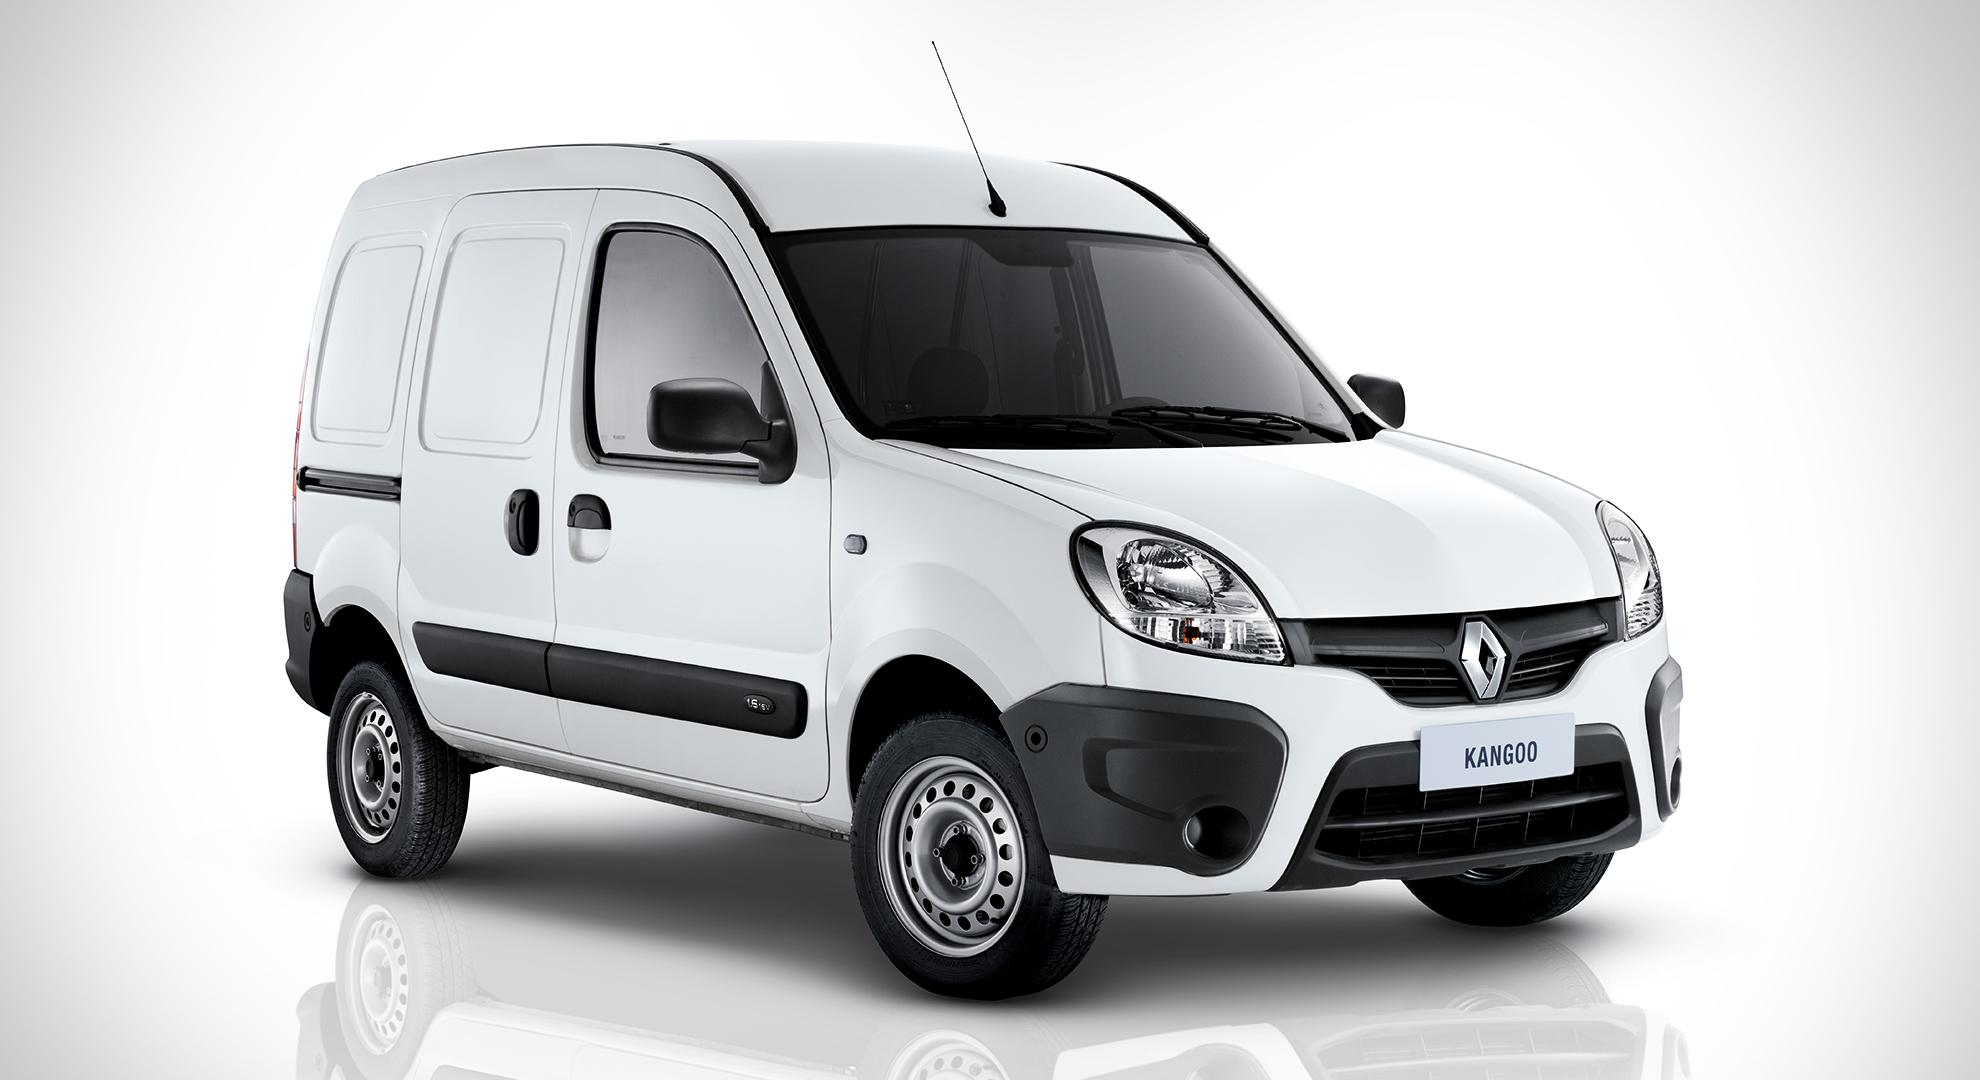 renault kangoo 7 places renault grand kangoo 70 d cibels mais 7 passagers bien renault grand. Black Bedroom Furniture Sets. Home Design Ideas